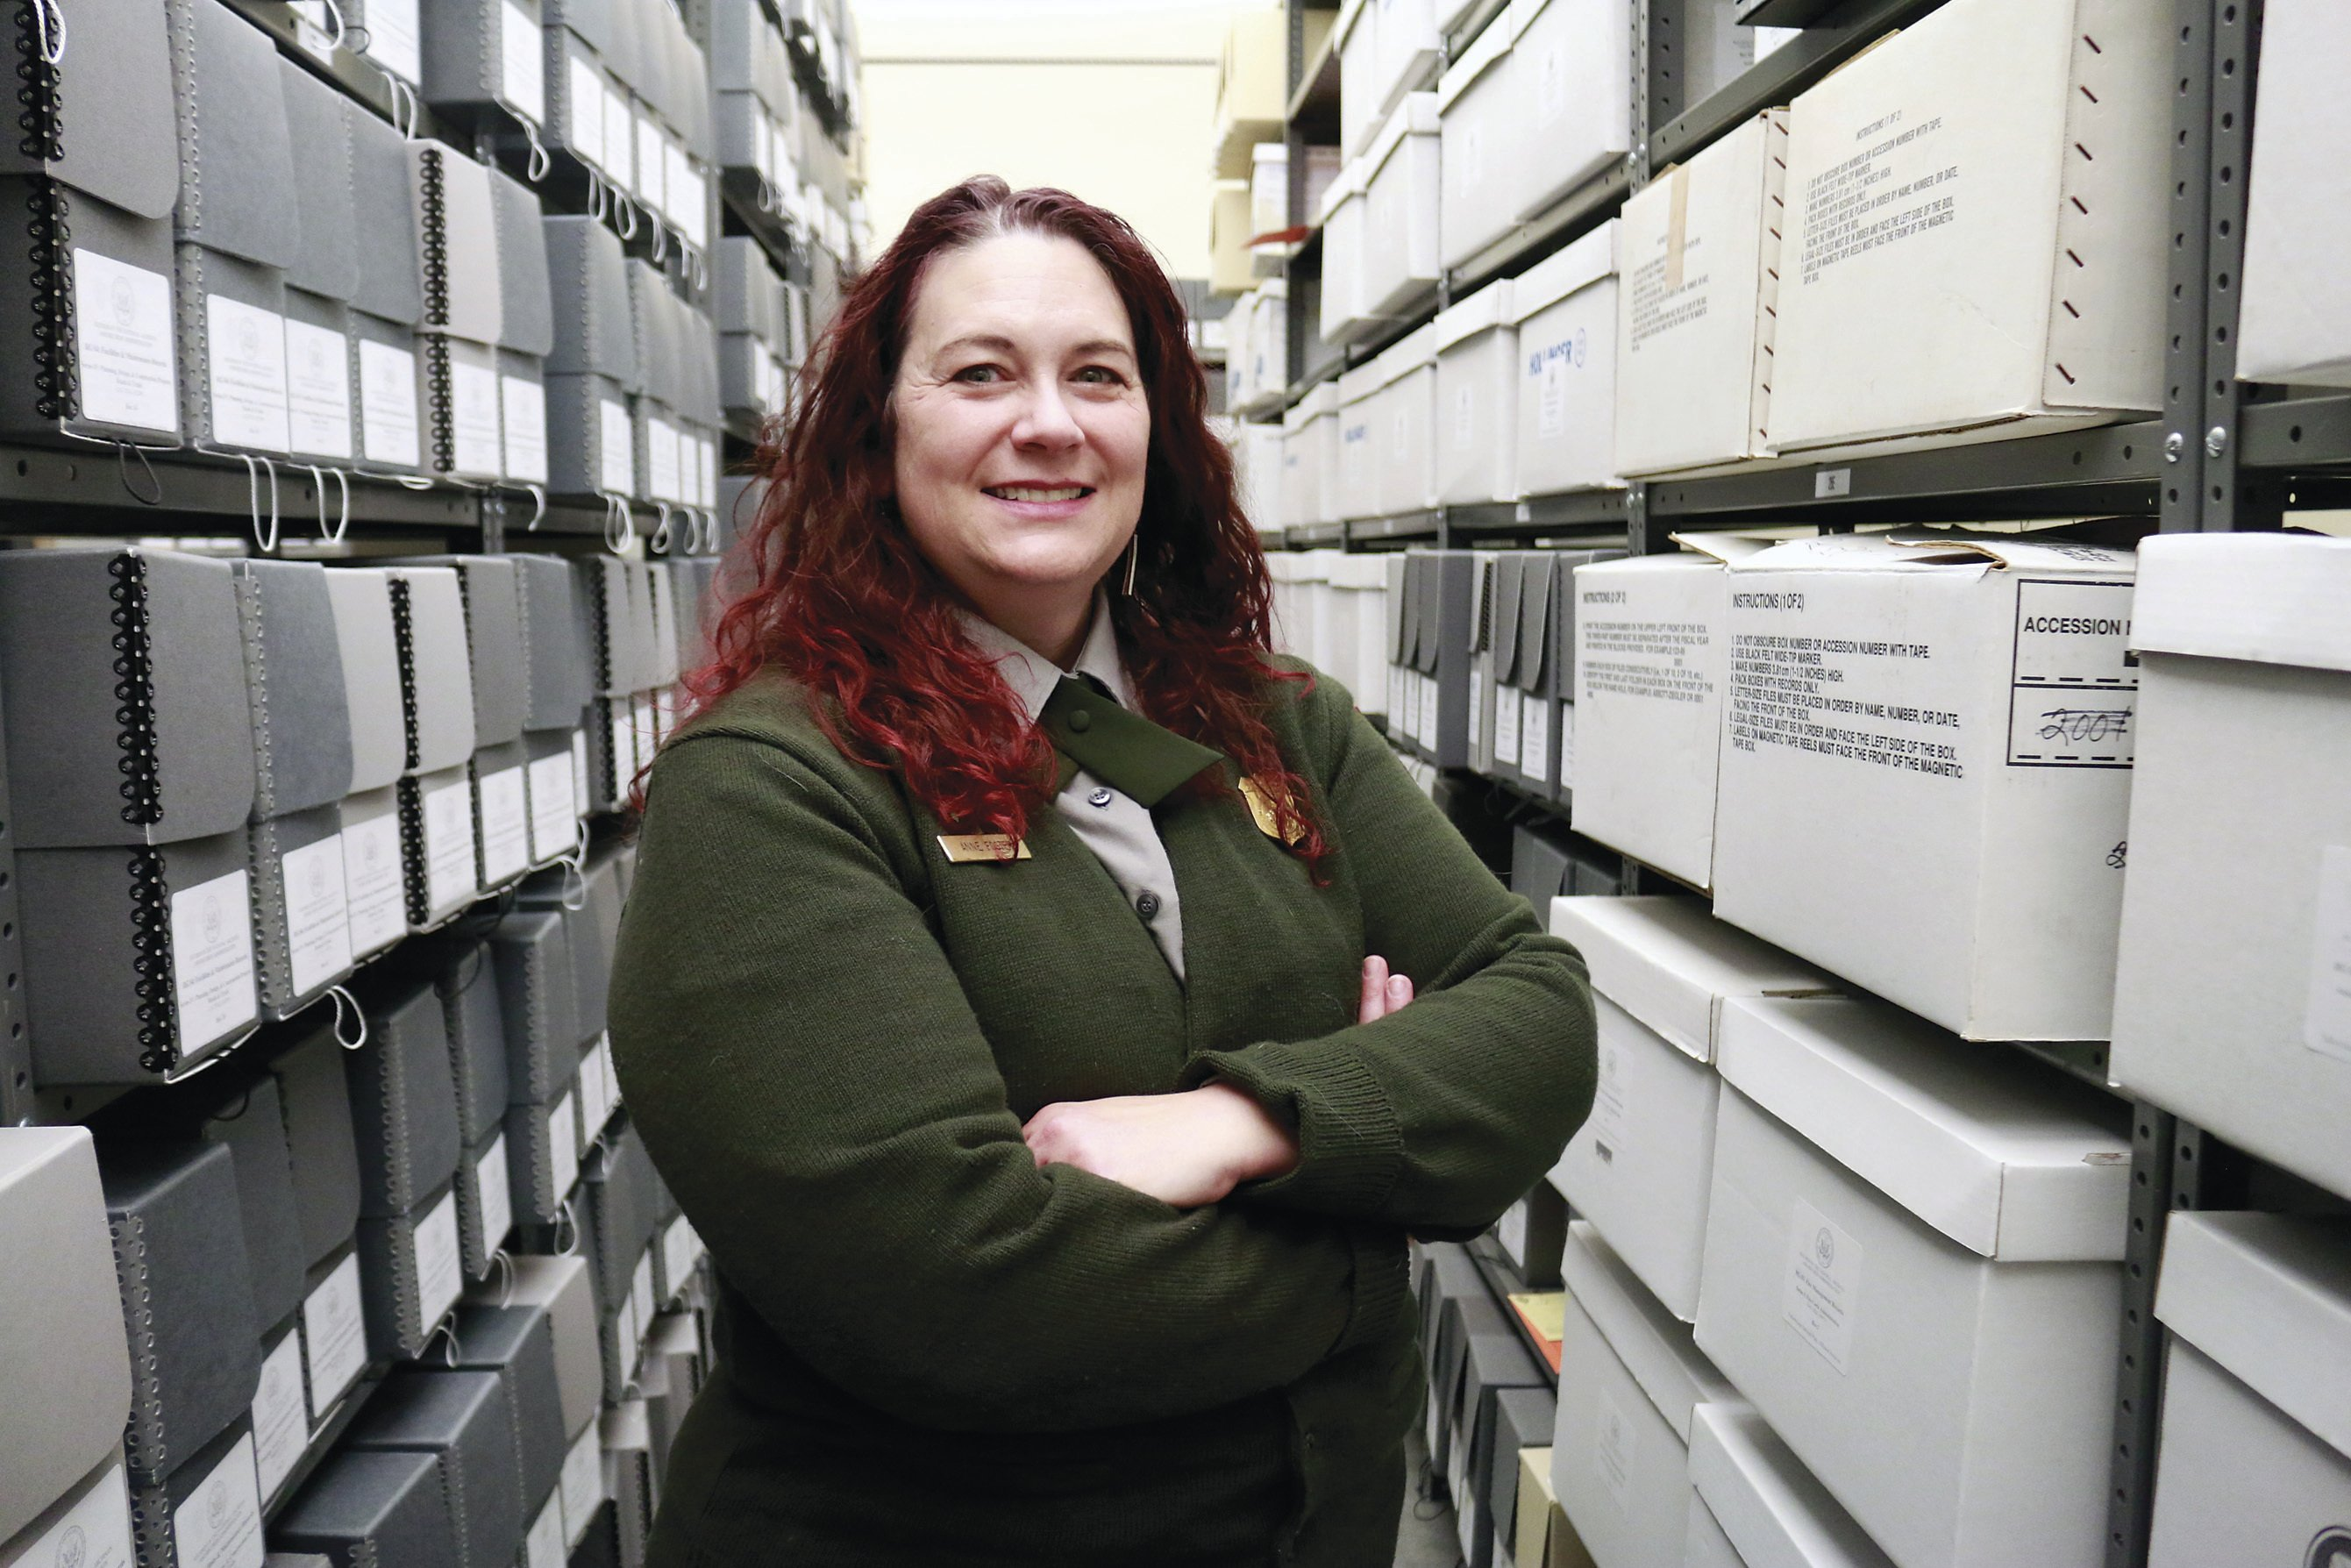 Archives tell Yellowstone's story with millions of records